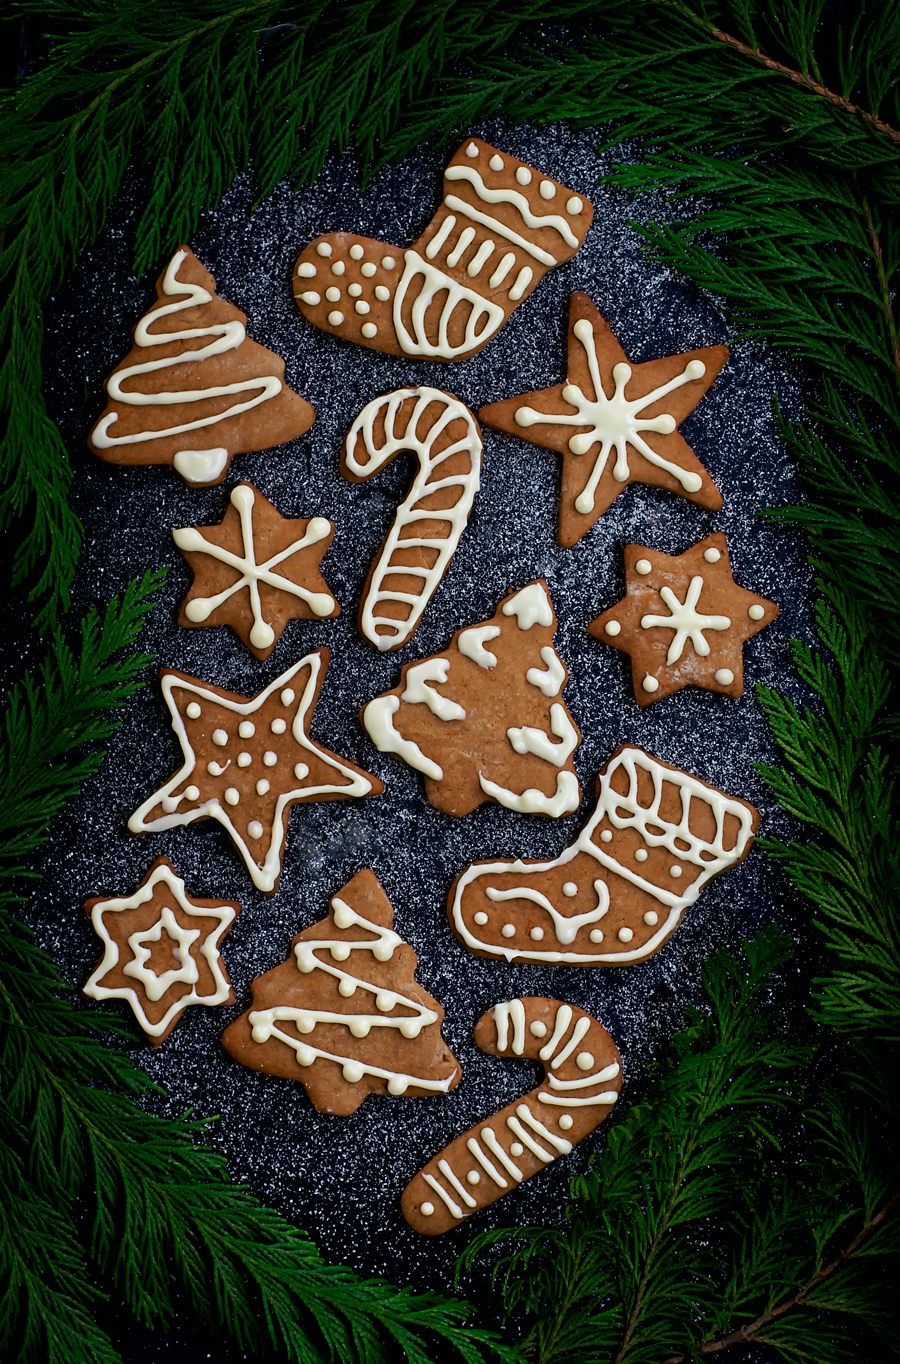 Vegan orange shortbread spiced with nutmeg, vanilla, cardamom, and allspice. Made with spelt flour and coconut sugar for a healthier option, these shortbread cutouts are crispy and bursting with winter flavours. Cut into your favourite shapes and decorate for a pretty food gift.